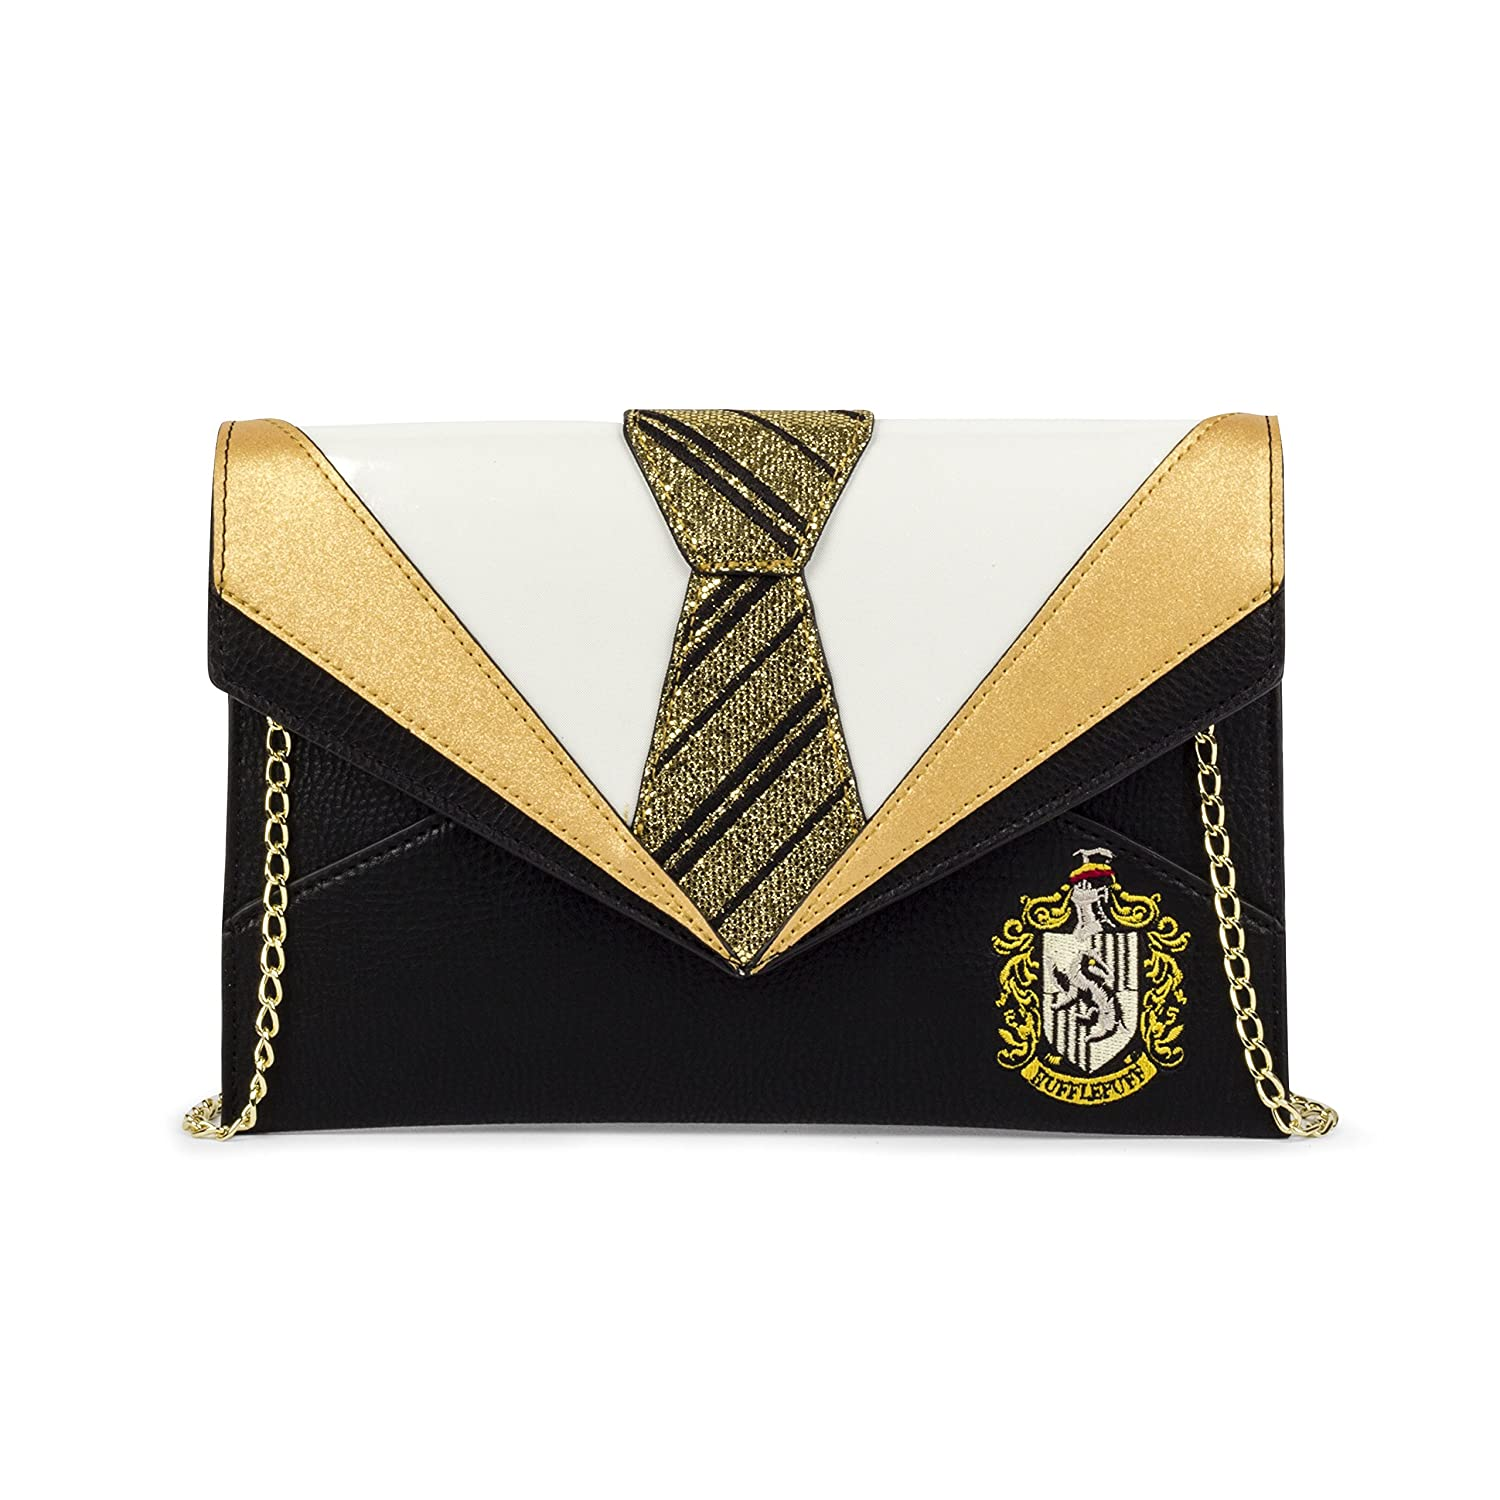 Danielle Nicole Harry Potter Huff Gold and Black Tie Uniform Clutch Bag DNHG